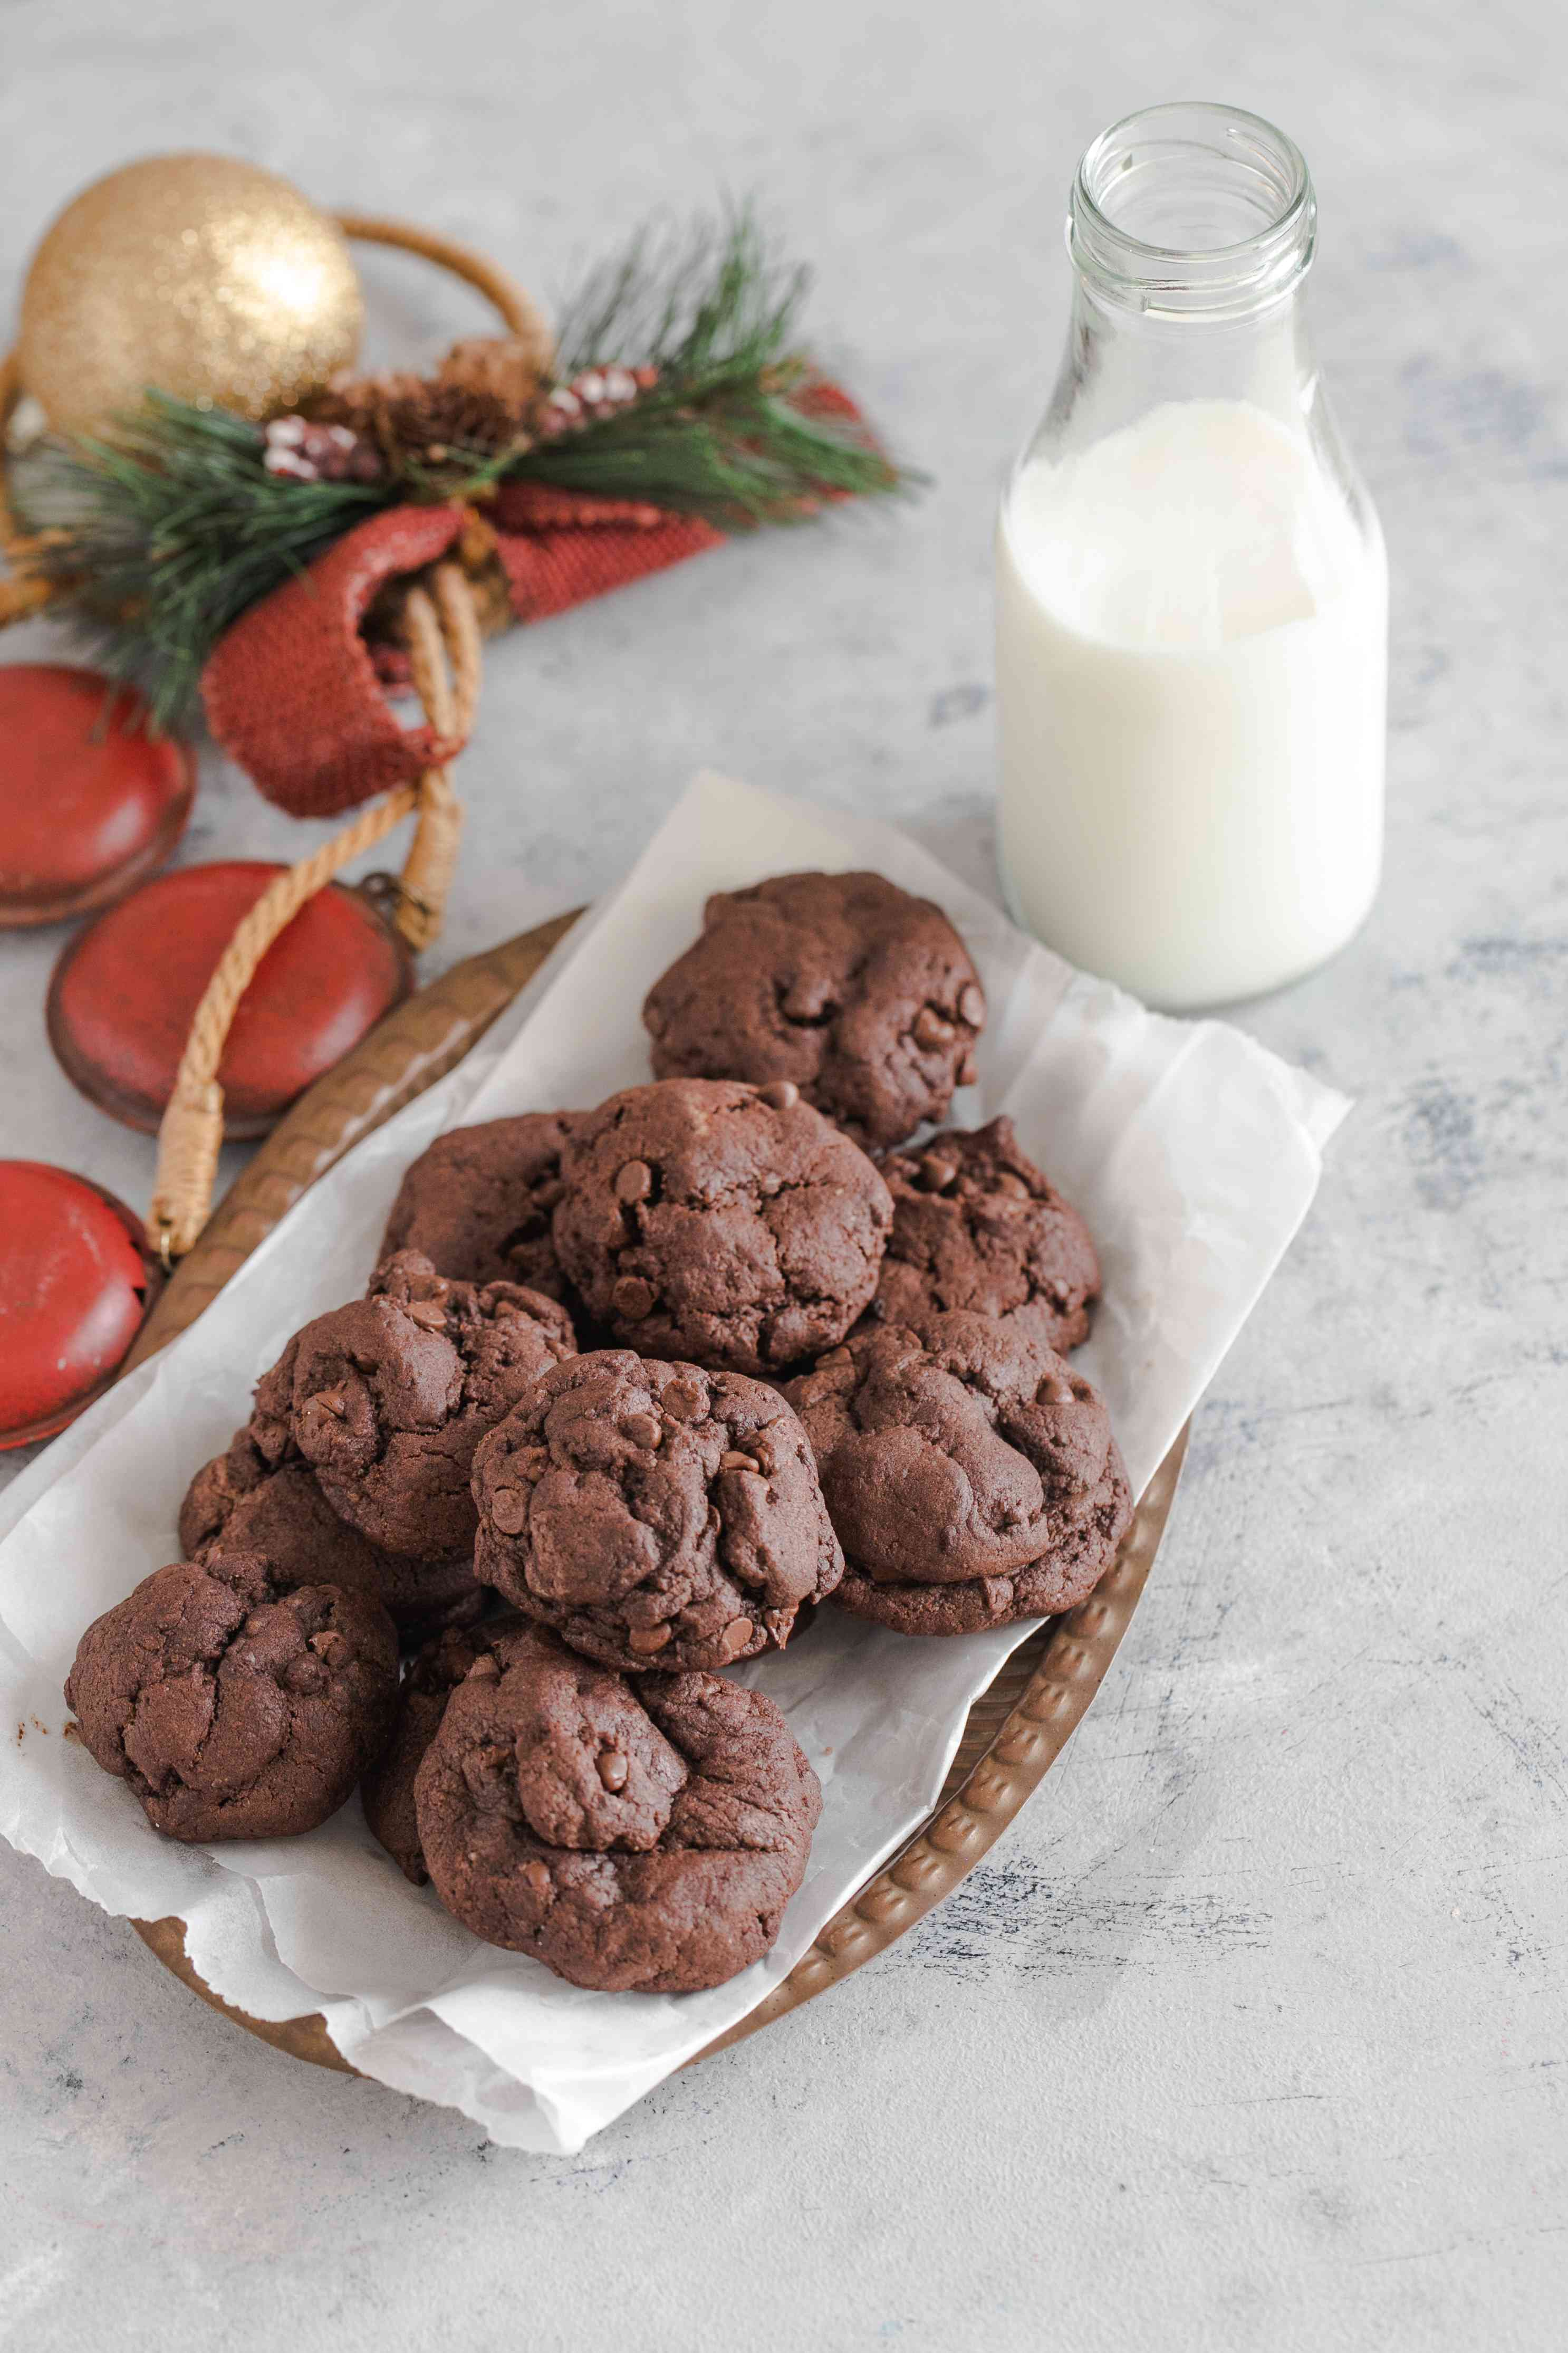 Low-fat double chocolate chip cookies recipe